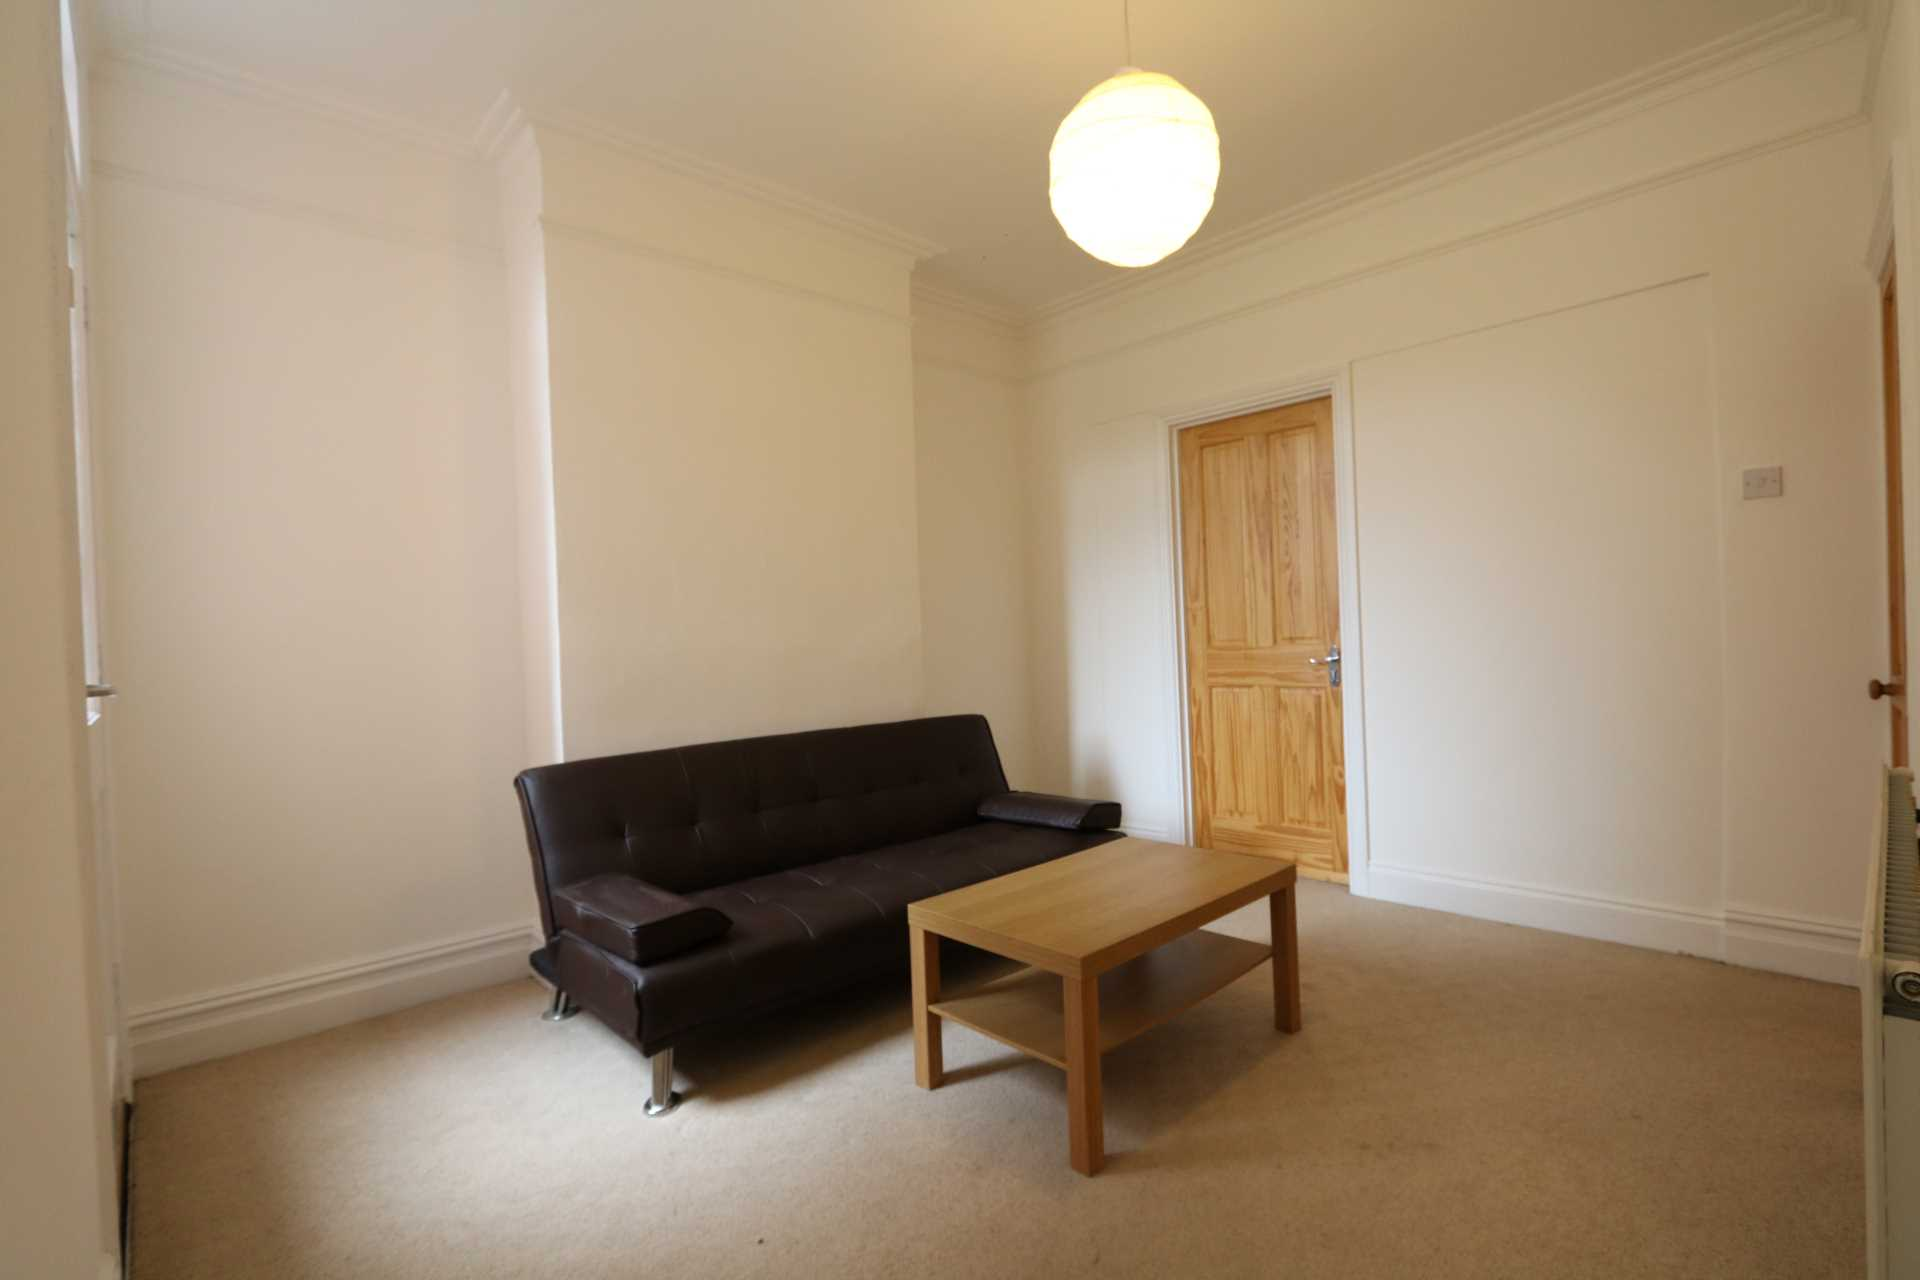 Gresham Street - 4 bedroom student home fully furnished, WIFI & bills included - NO FEES, Image 2